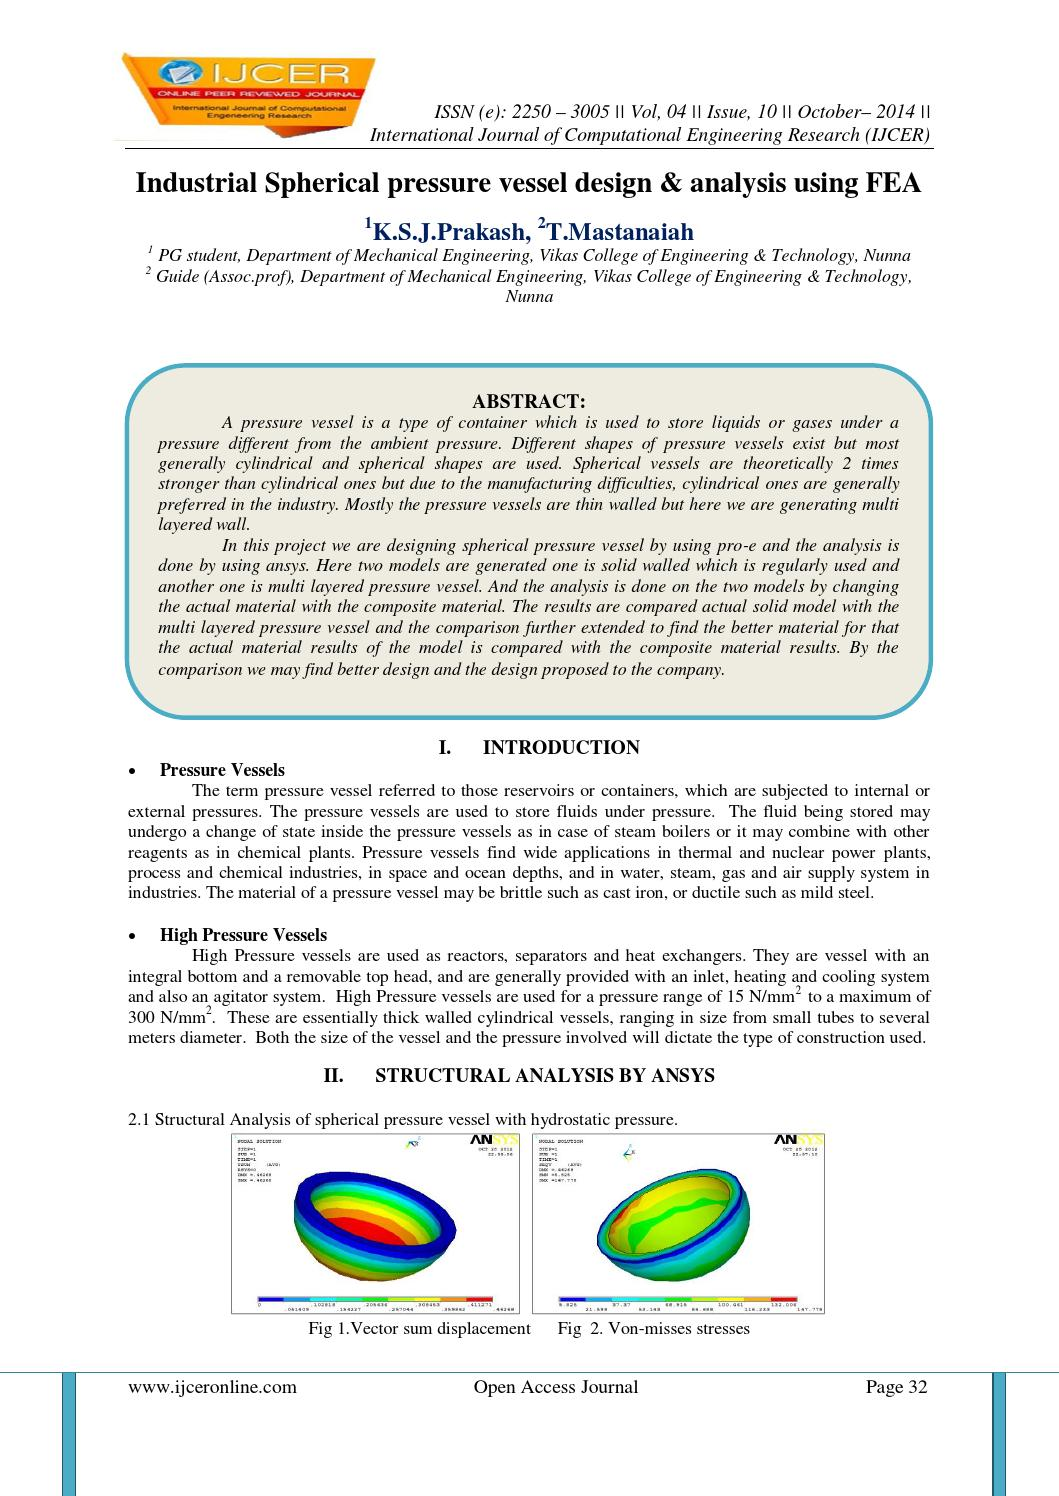 WRG-9423] Ansys 10 Structural Analysis Guide